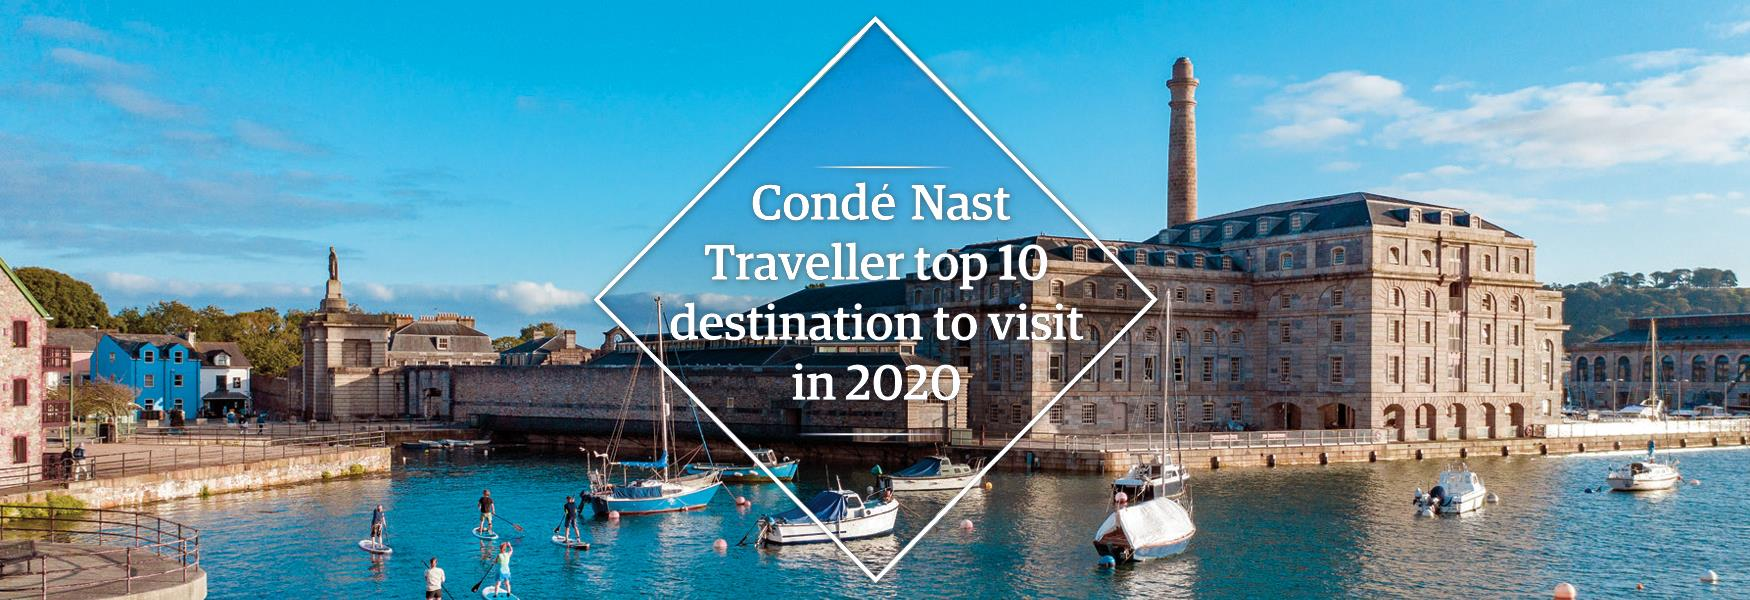 Conde Nast Traveller Top 10 destination to visit in 2020